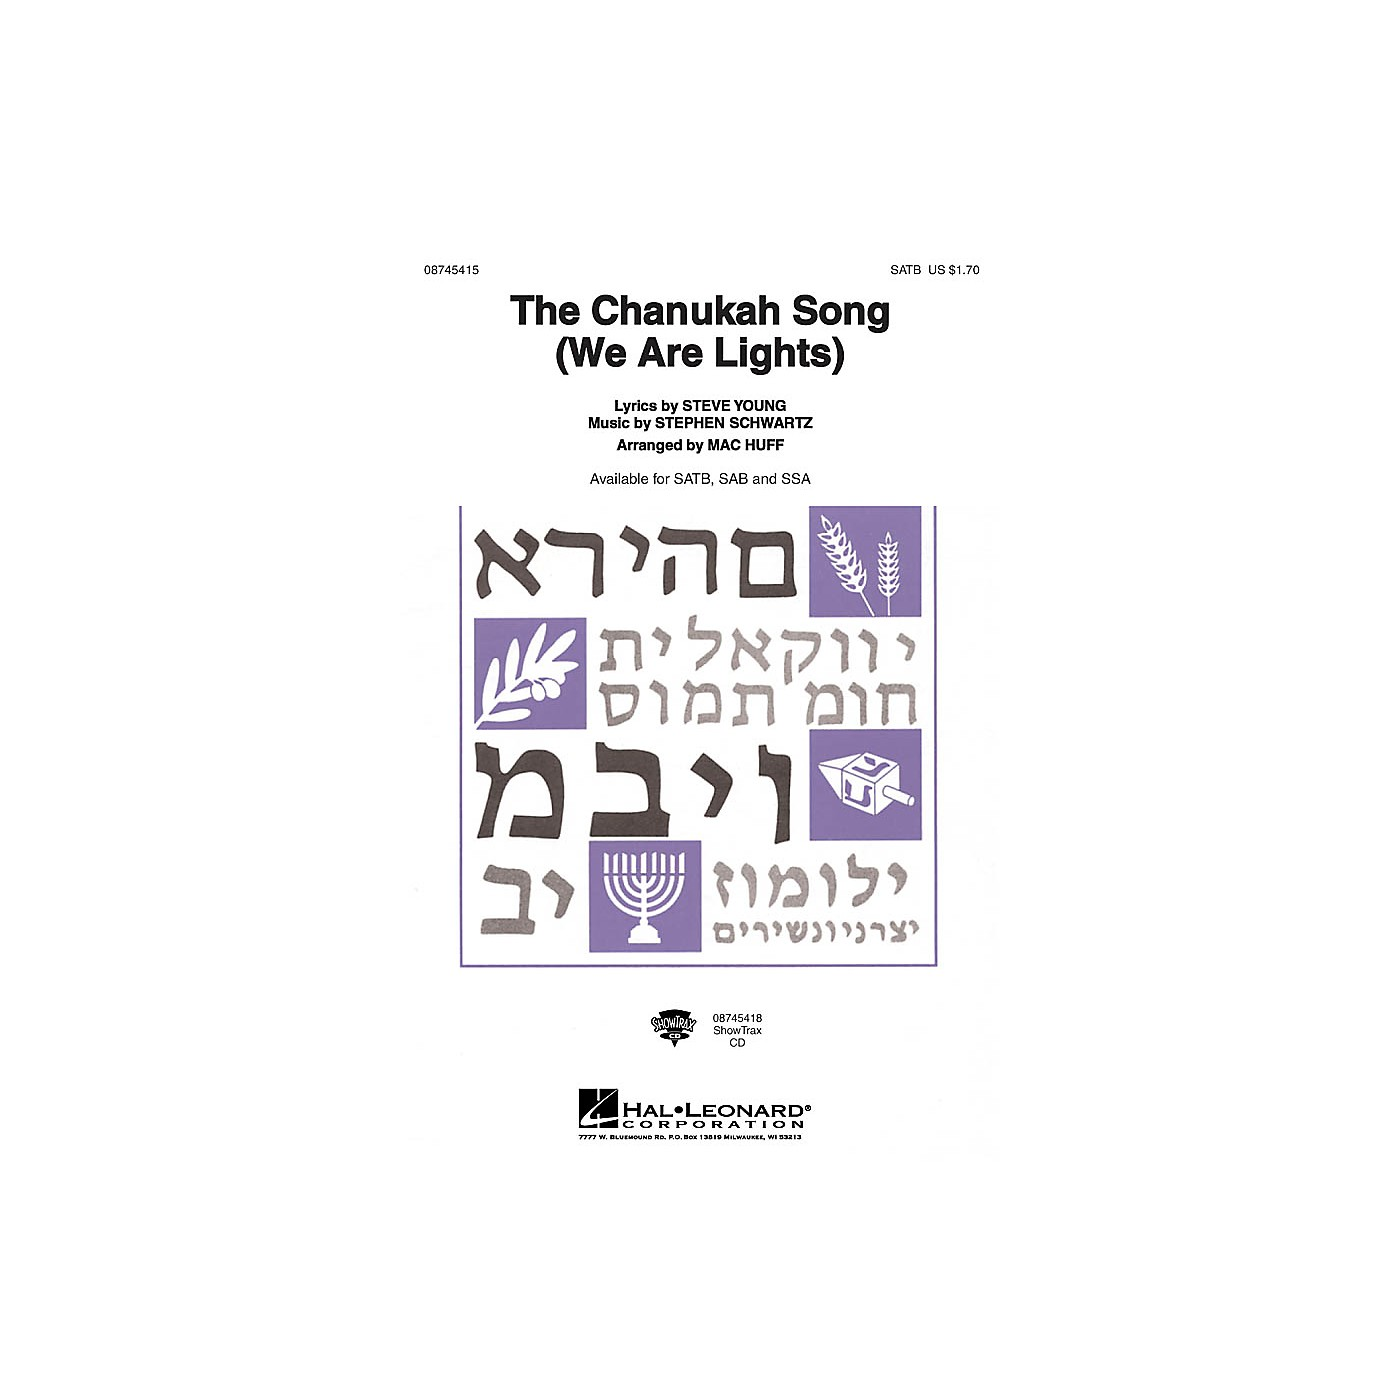 Hal Leonard The Chanukah Song (We Are Lights) SSA Arranged by Mac Huff thumbnail